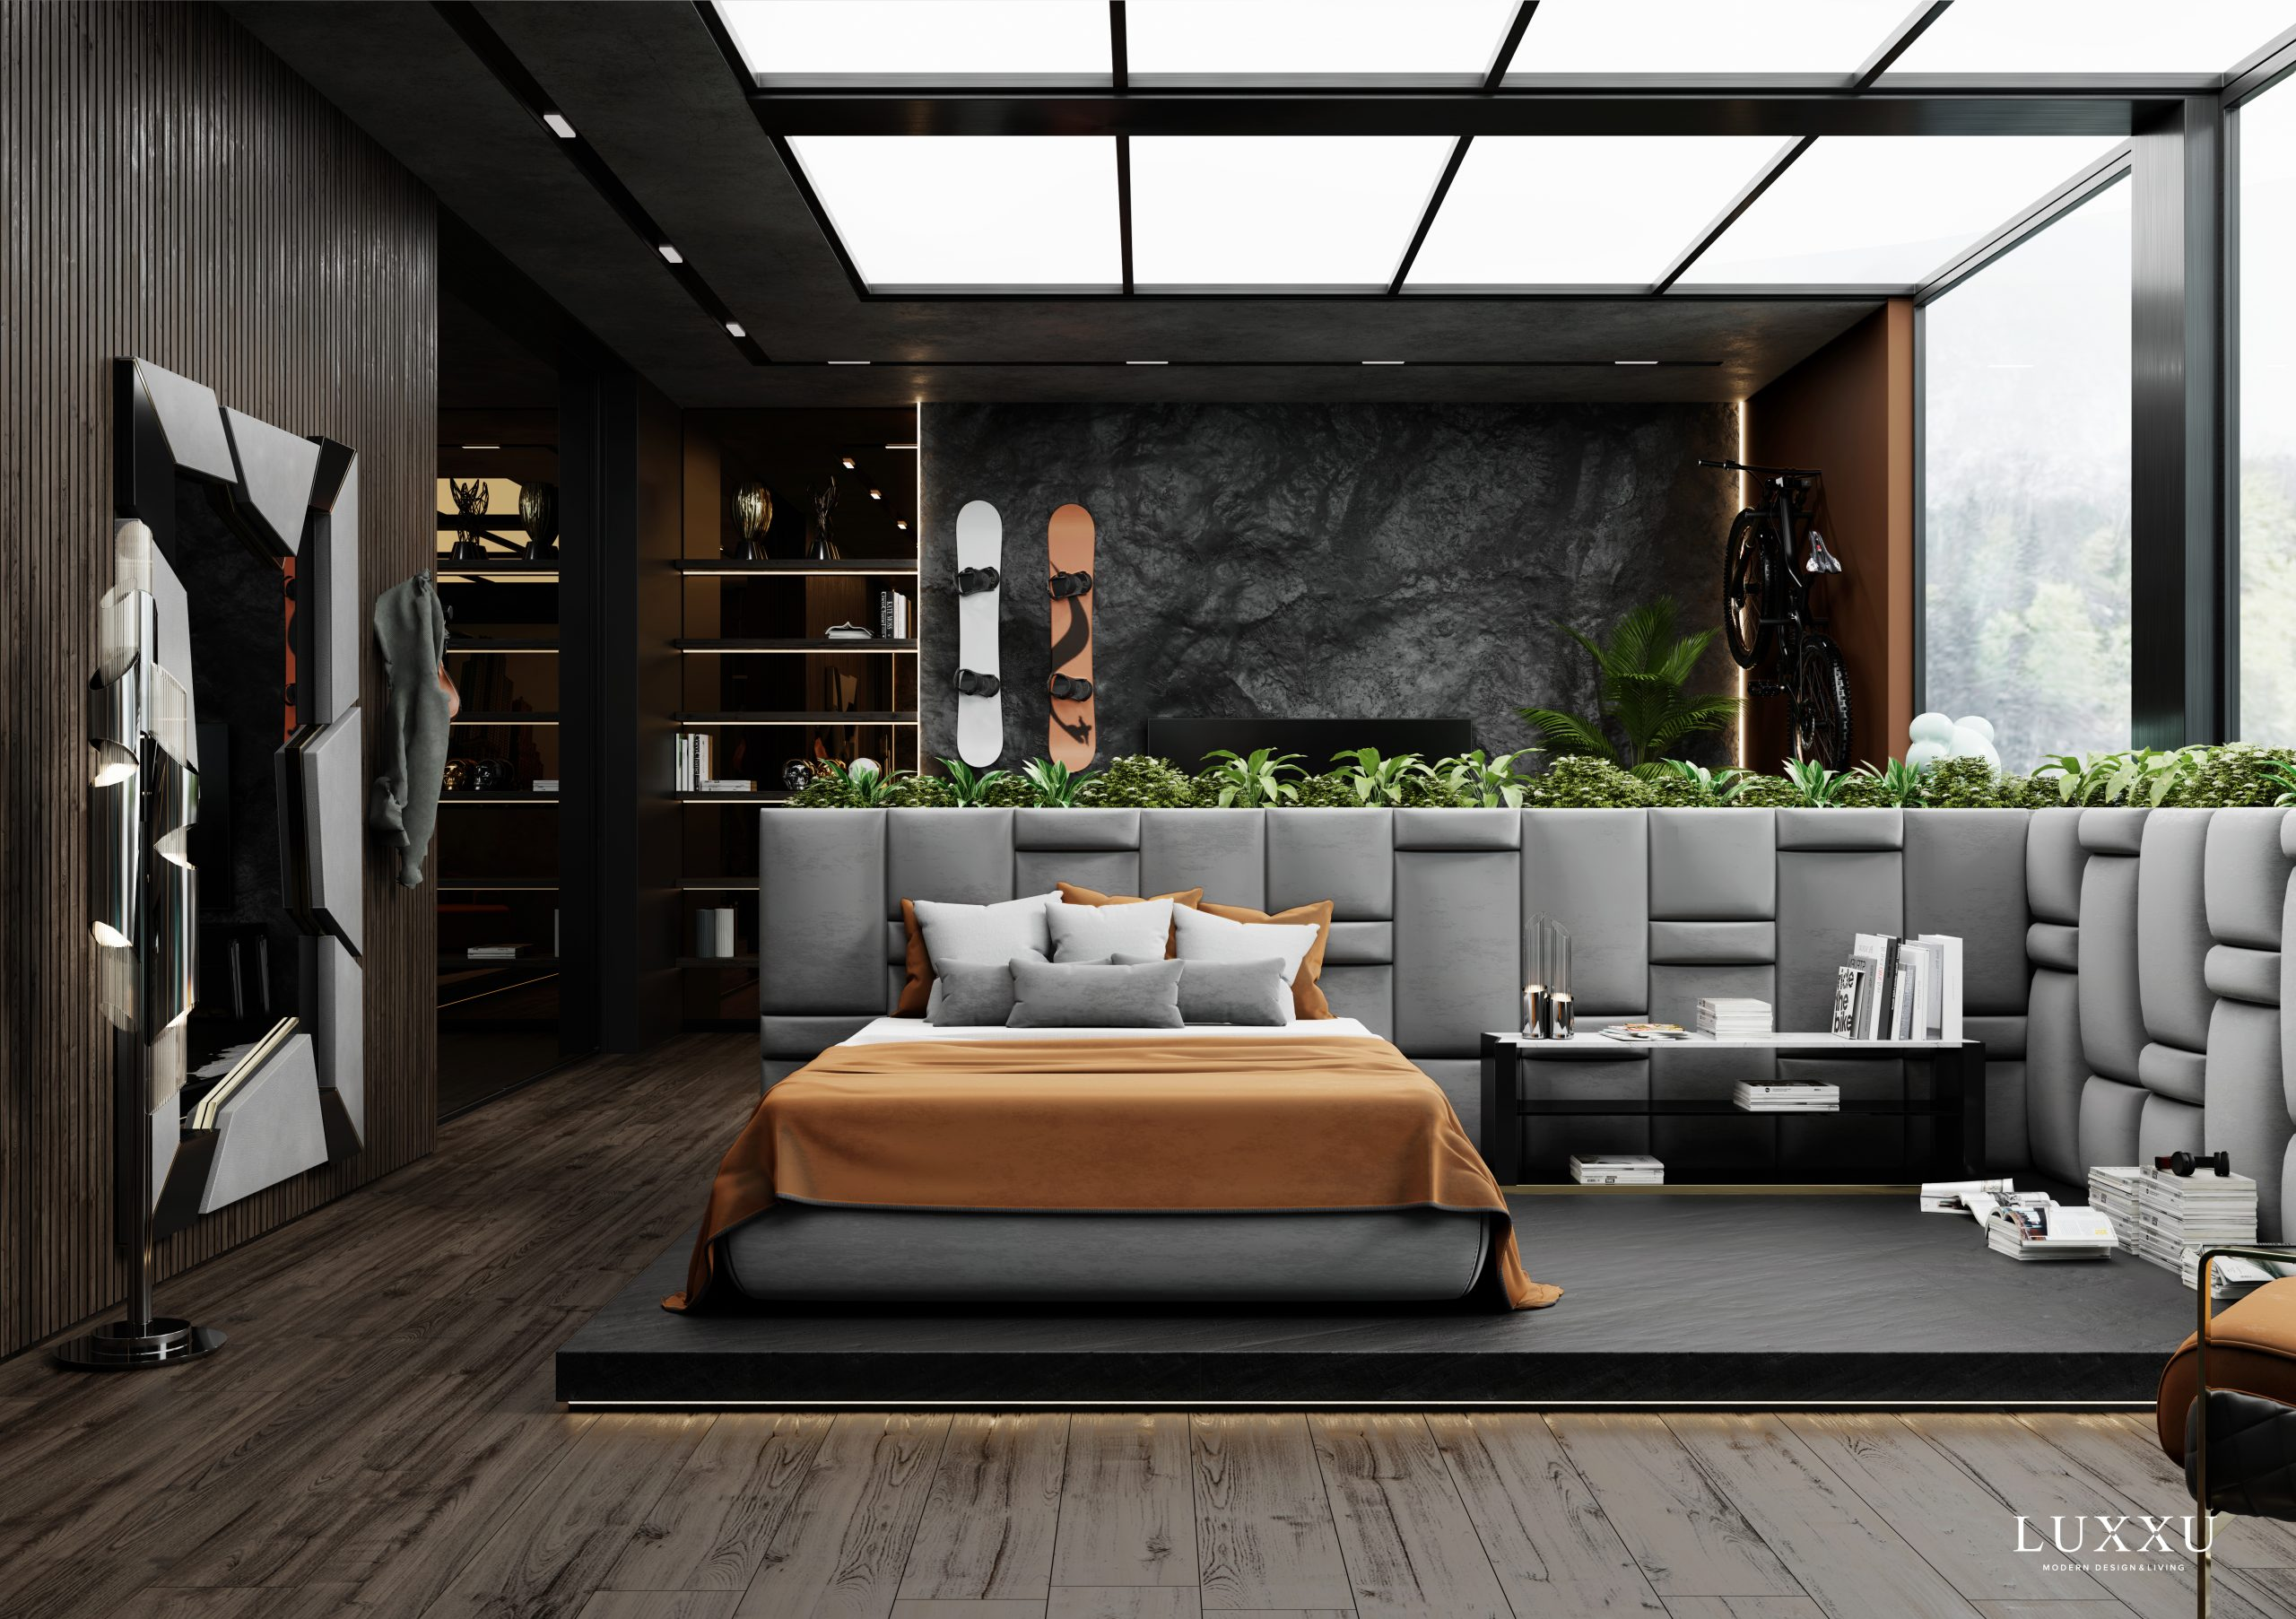 Luxury Teenage Bedroom - Youth And Exquisiteness Combined By Luxxu